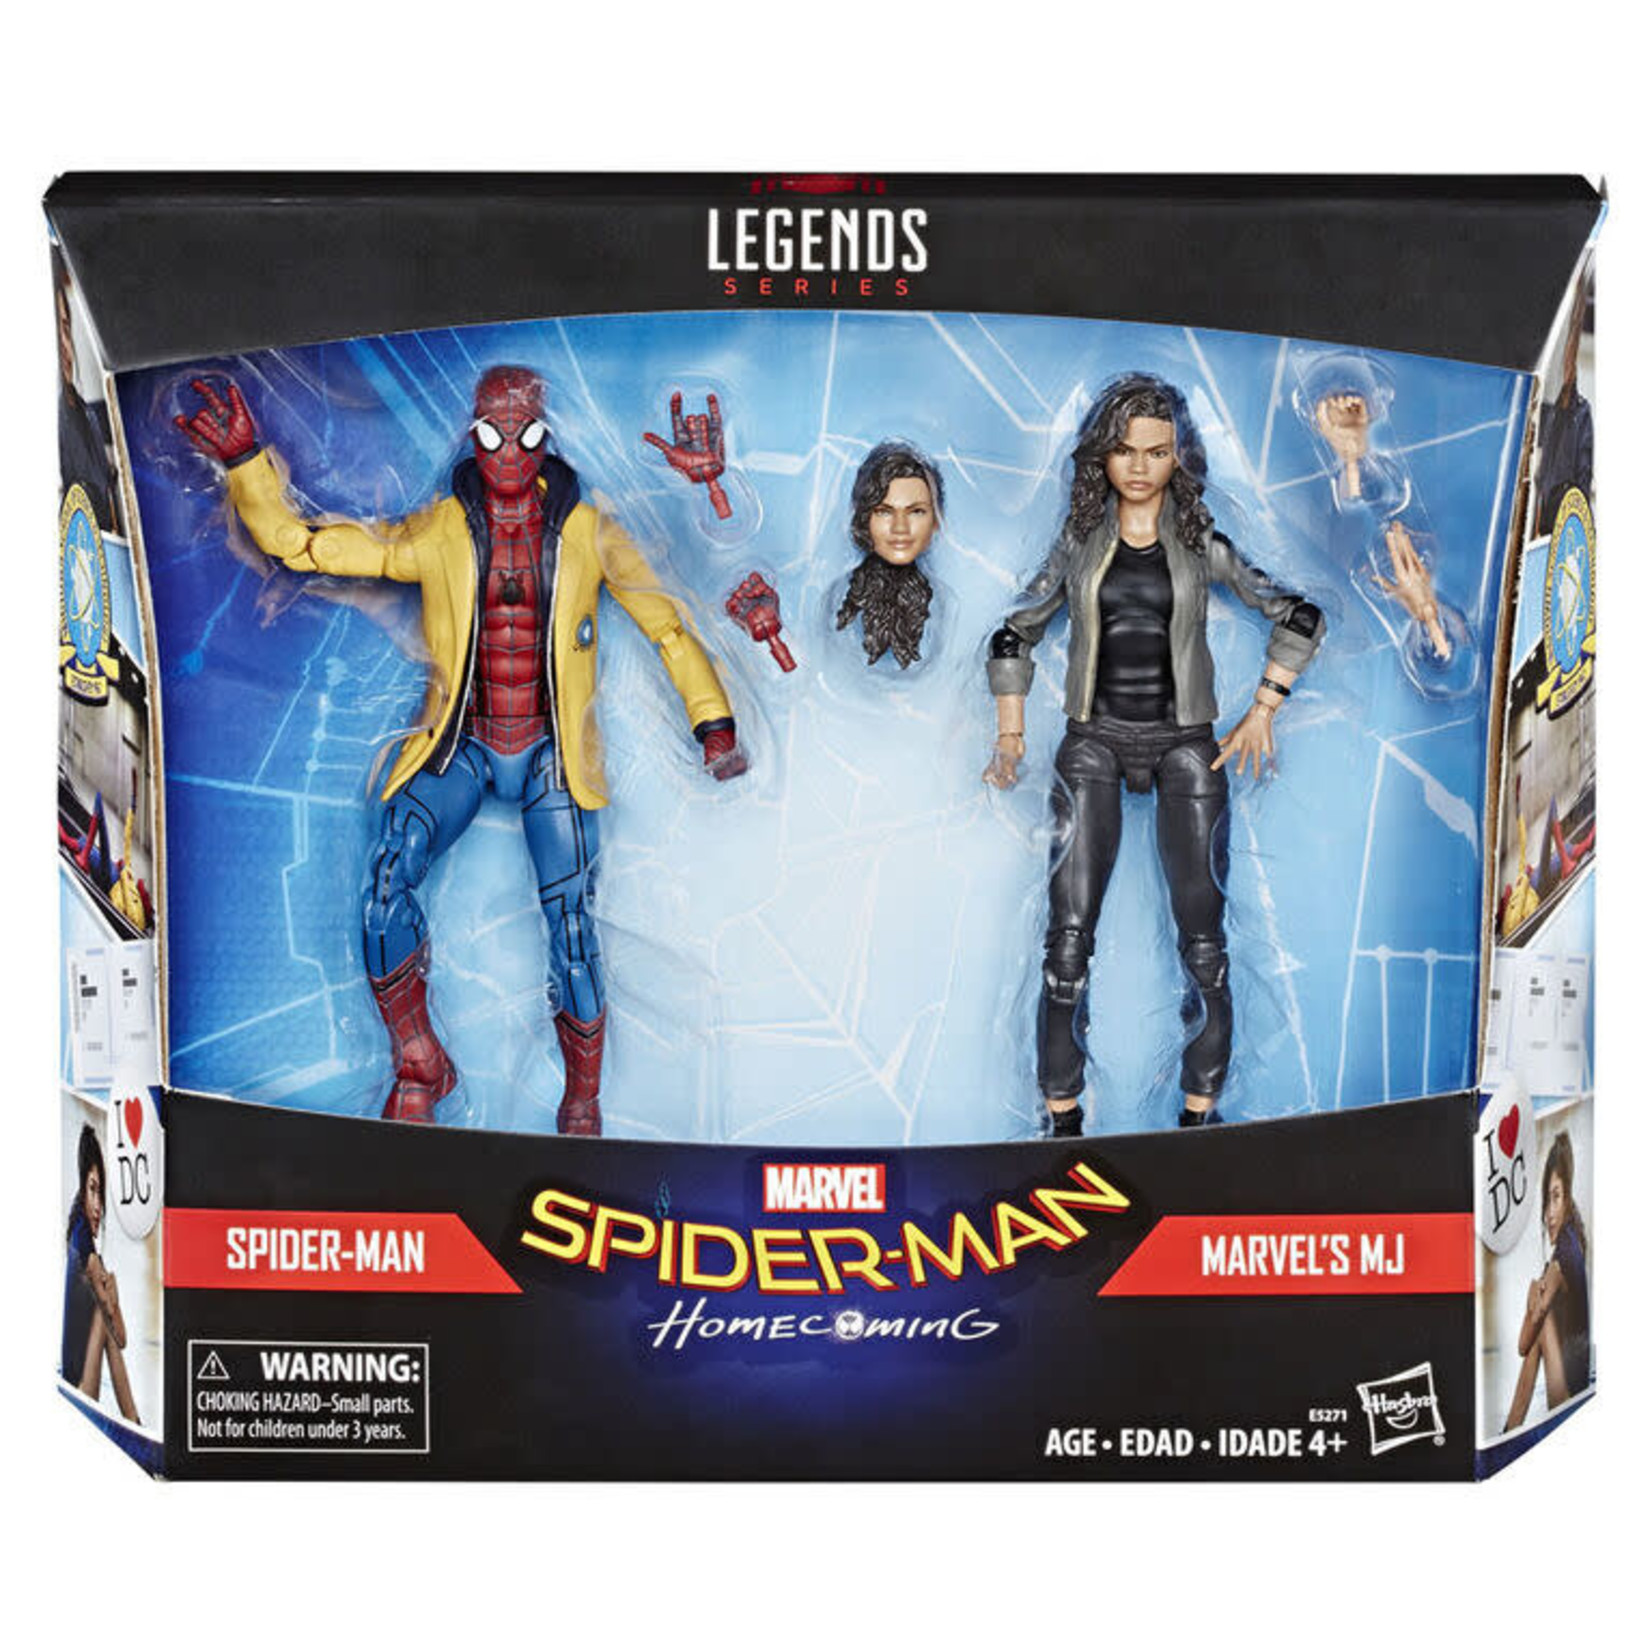 Hasbro Marvel Legend 2-Pack Spider-Man Homecoming Spiderman and MJ